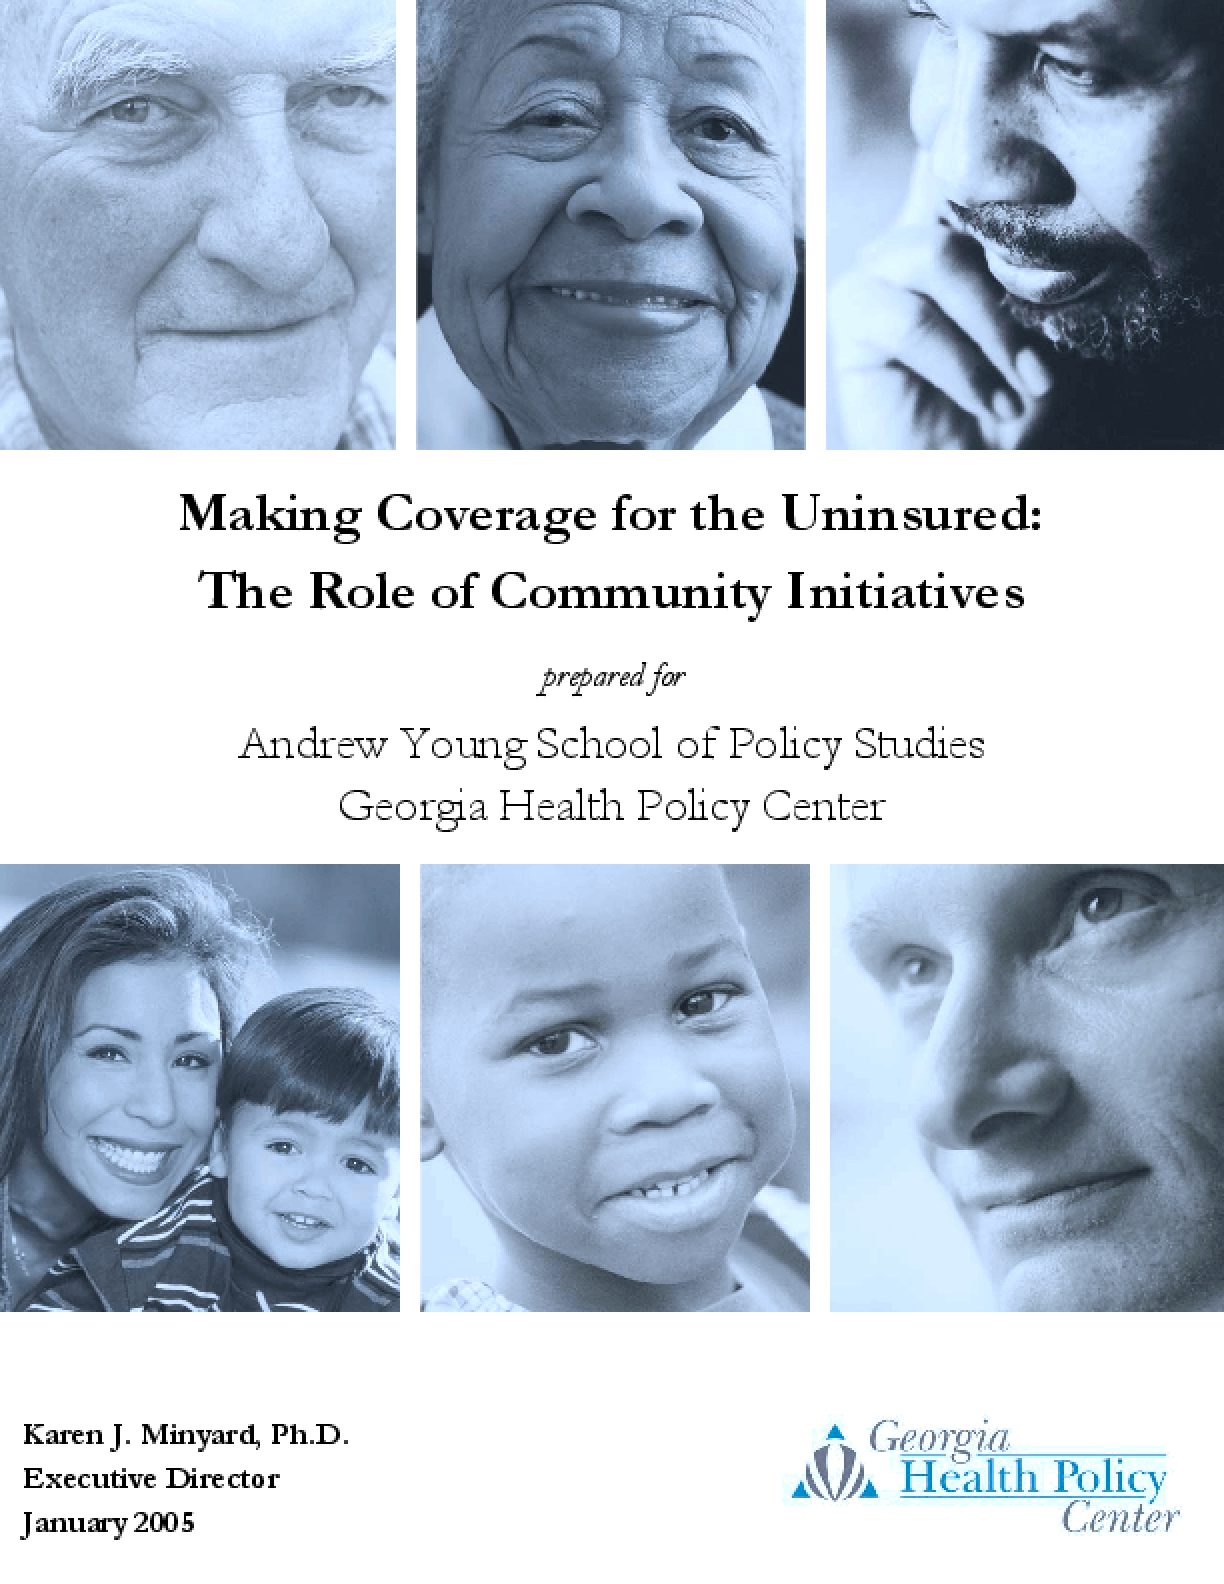 Making Coverage for the Uninsured: The Role of Community Initiatives